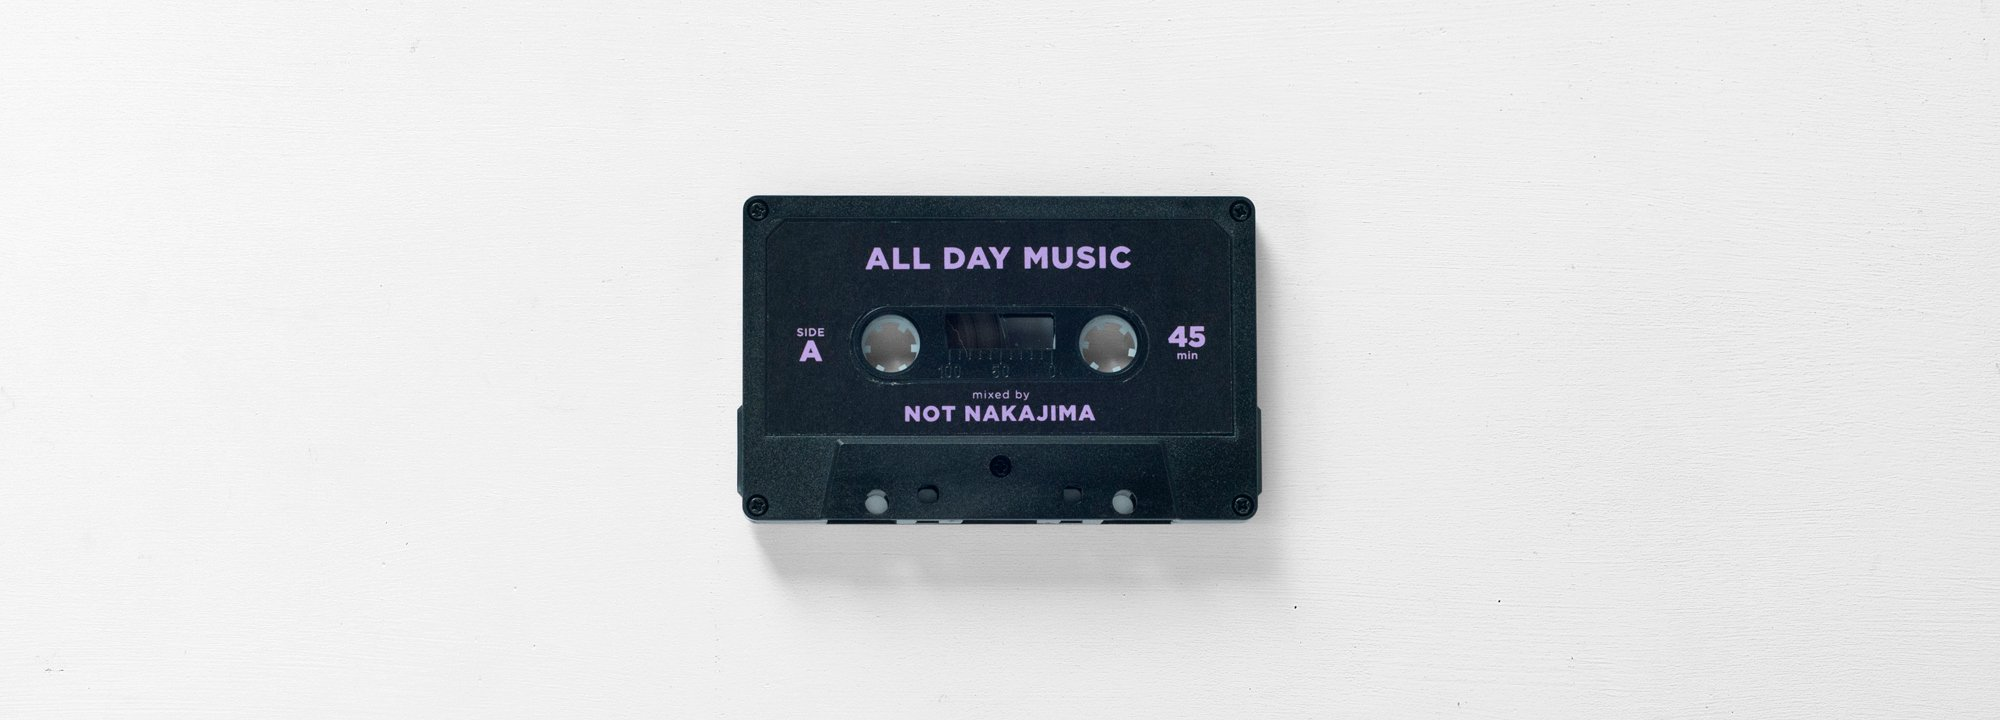 "【BROS限定】DL Mix ""ALL DAY MUSIC #2"" Mixed by NOT NAKAJIMA"